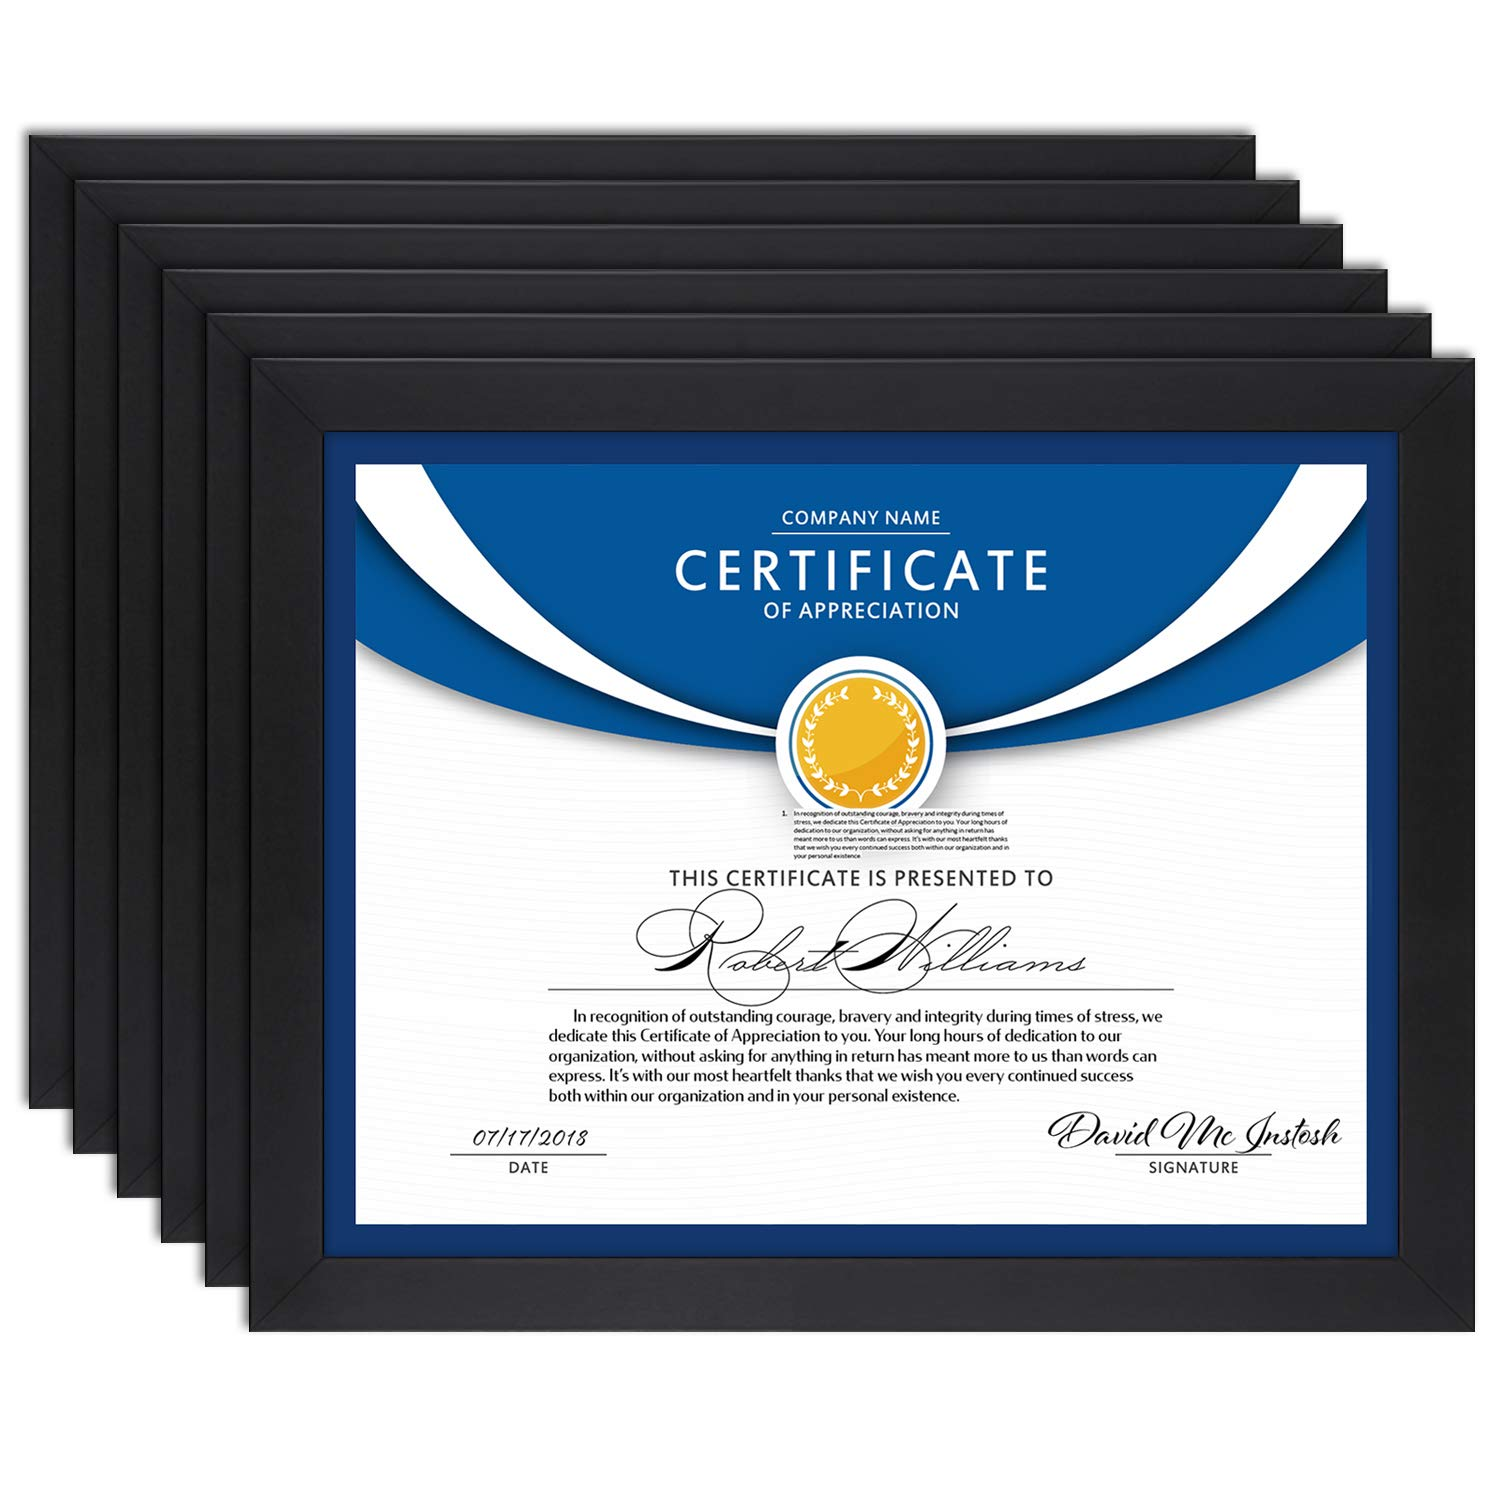 Icona Bay 8.5x11 Diploma Frame (6 Pack, Black), Black Sturdy Wood Composite Certificate Frame, Document Frame Bulk, Wall or Table Mount, Set of 6 Exclusives Collection by Icona Bay